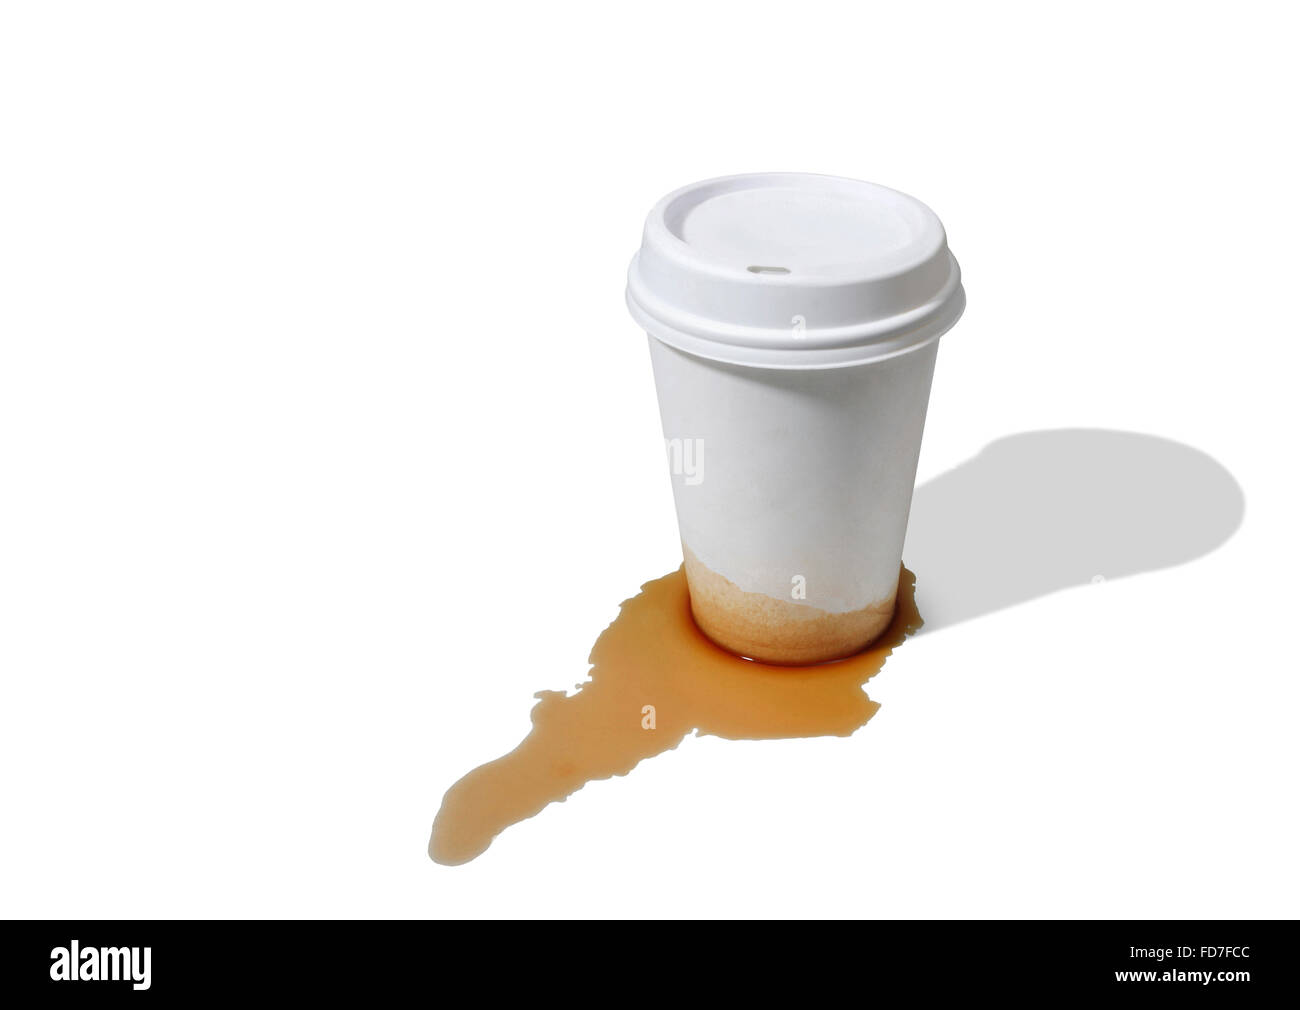 Studio shot of a leaky Takeout Coffee Cup - Stock Image